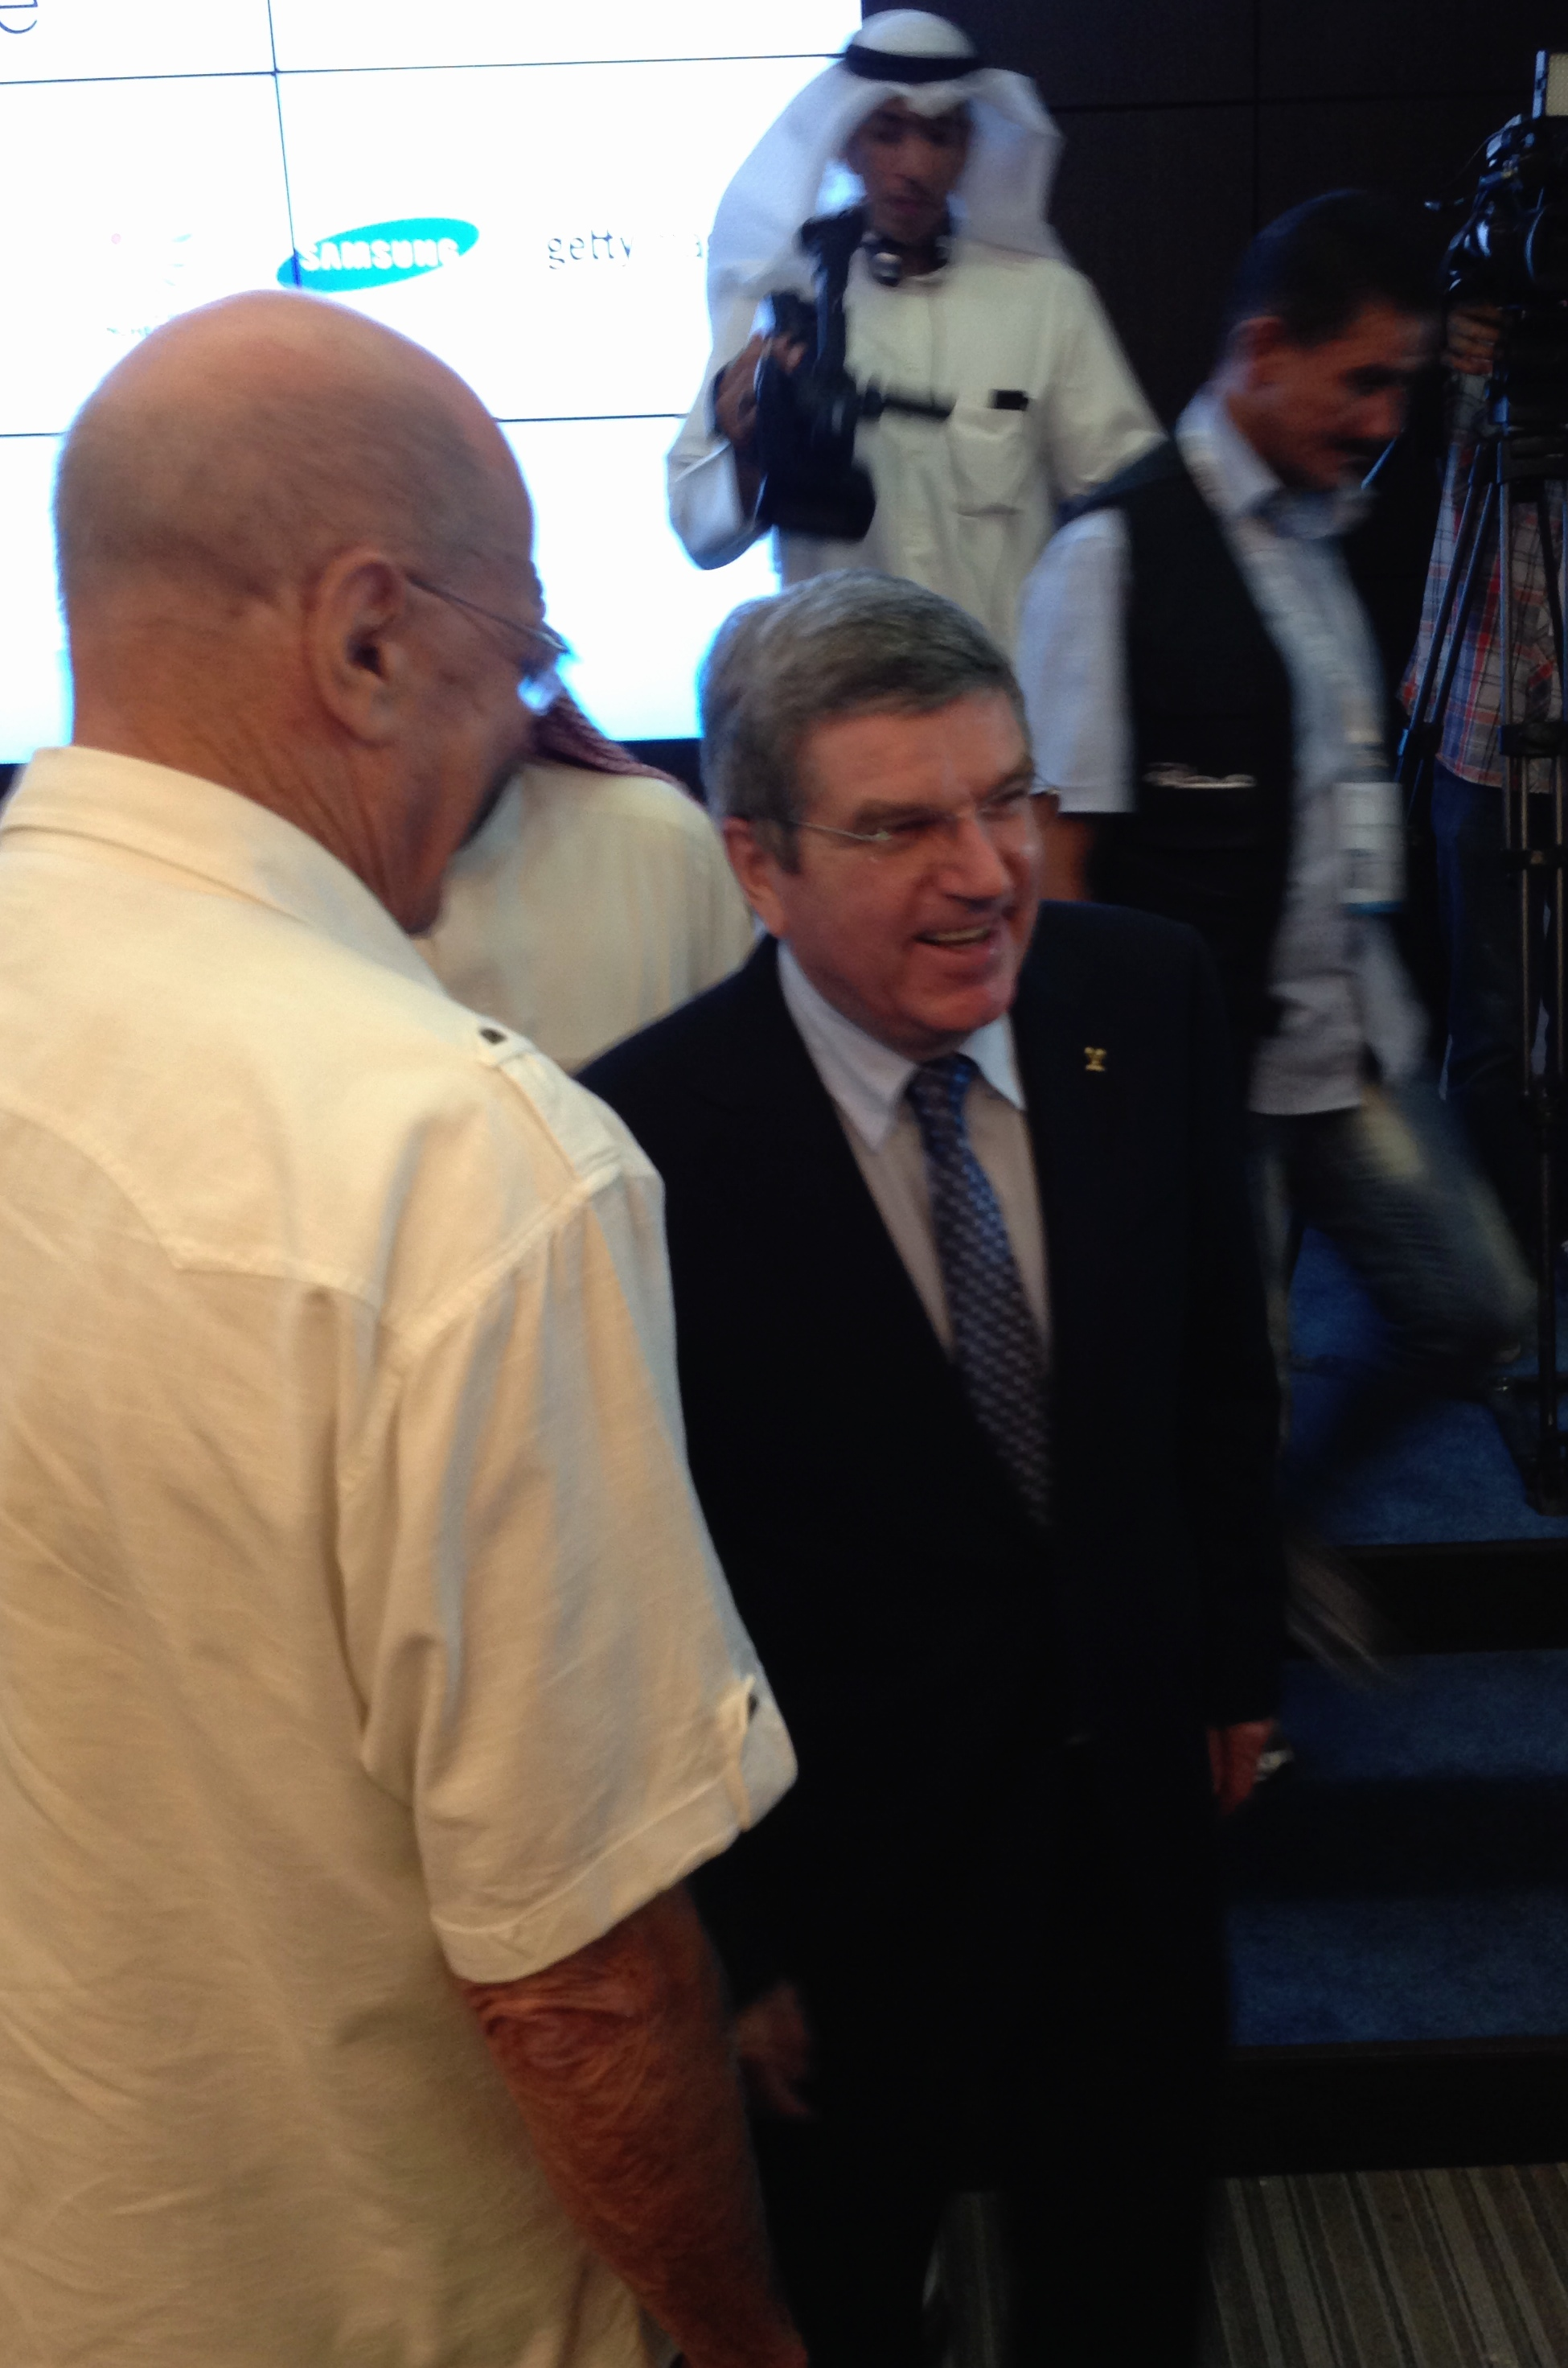 IOC president Thomas Bach and honorary member R. Kevan Gosper of Australia at Sunday's news conference